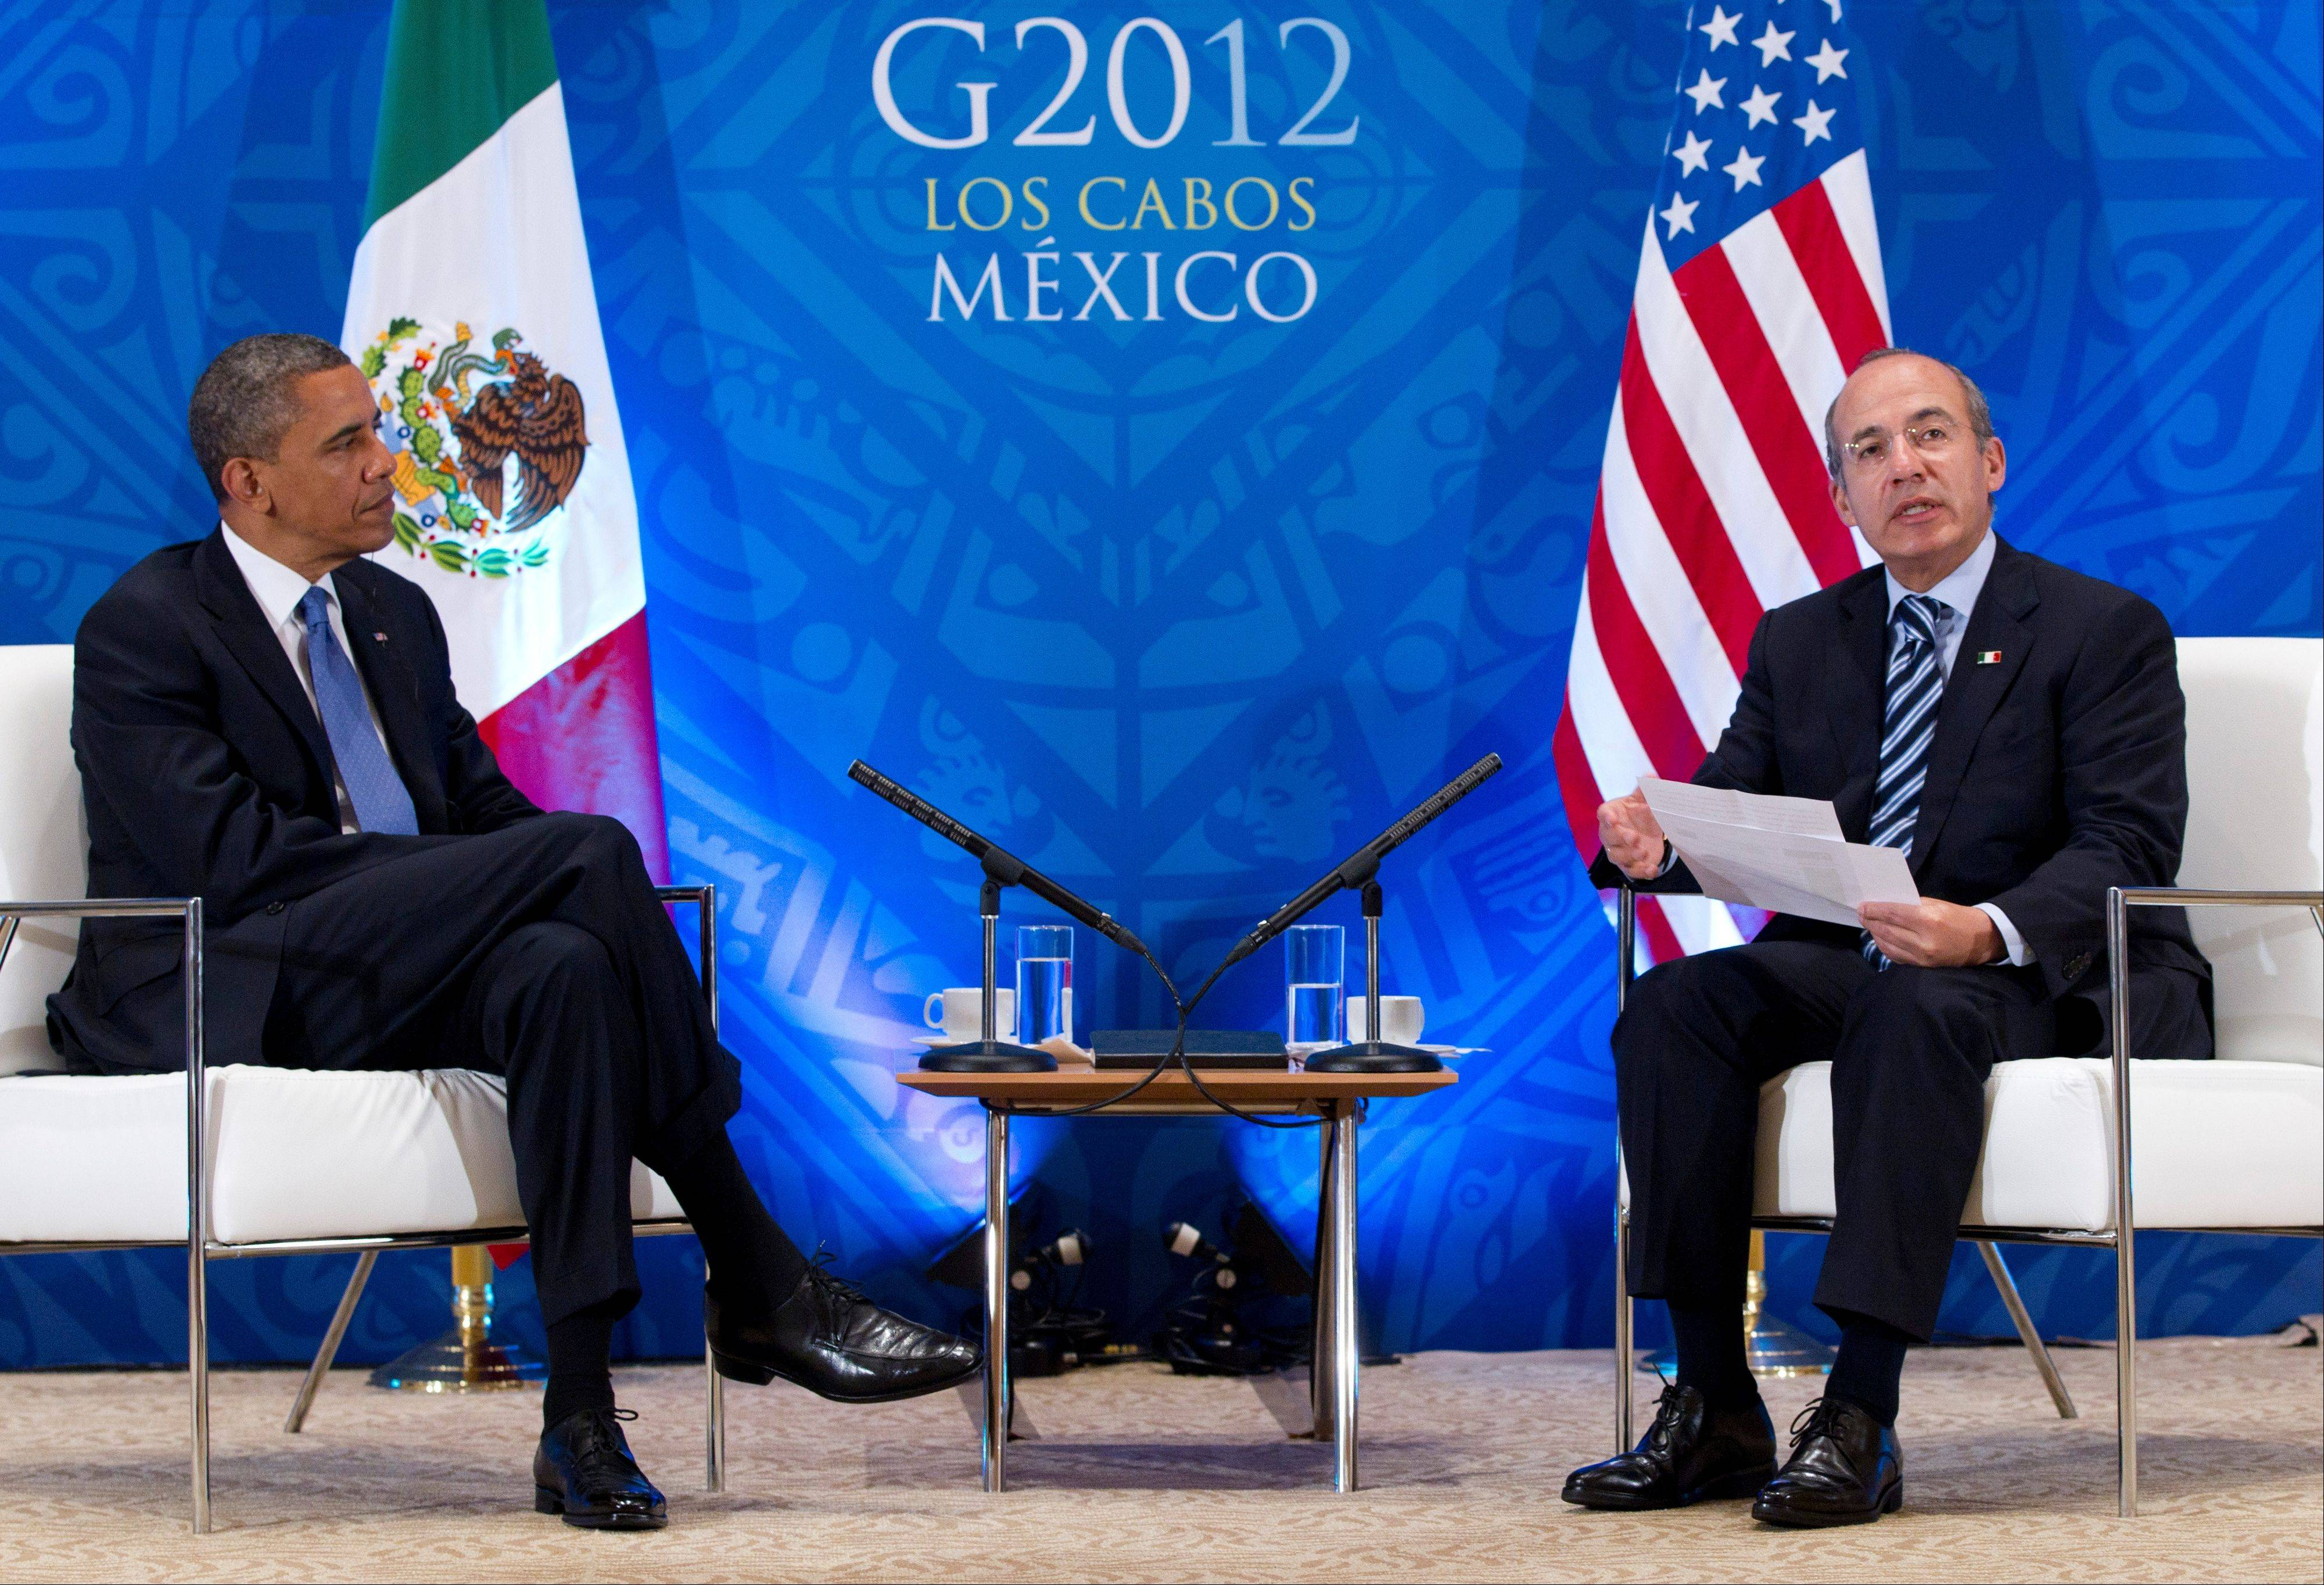 President Barack Obama attends a bilateral meeting with Mexico�s President Felipe Calderon during the G20 Summit Monday in Los Cabos, Mexico.